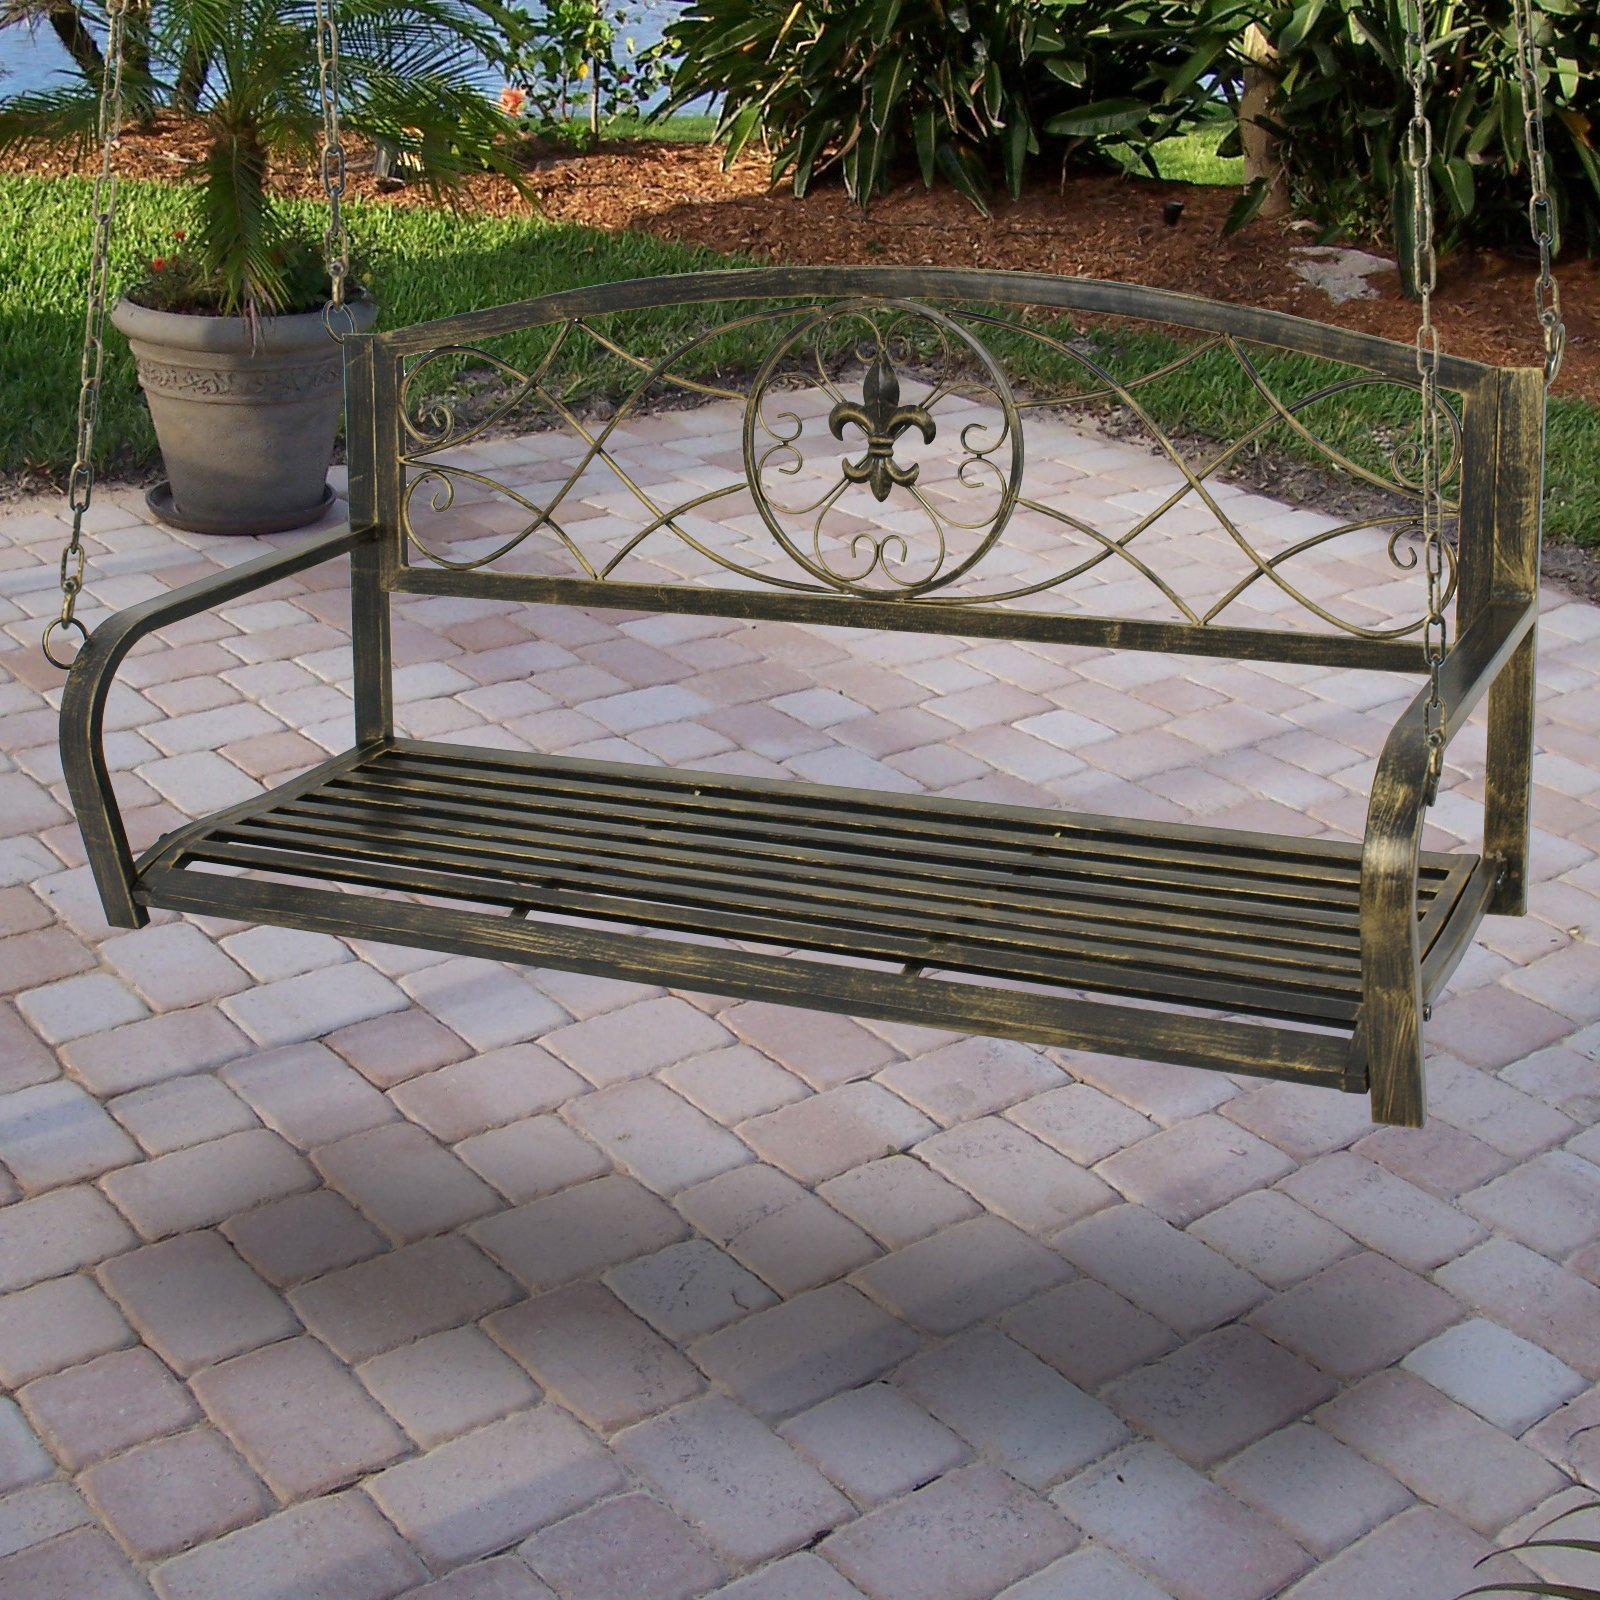 Smartxchoices Treated Metal Hanging Patio Swing Bench Porch Furniture Fleur-De-Lis Design 2 Person Heavy Duty Swing Chair 50.5''L by Smartxchoices (Image #7)